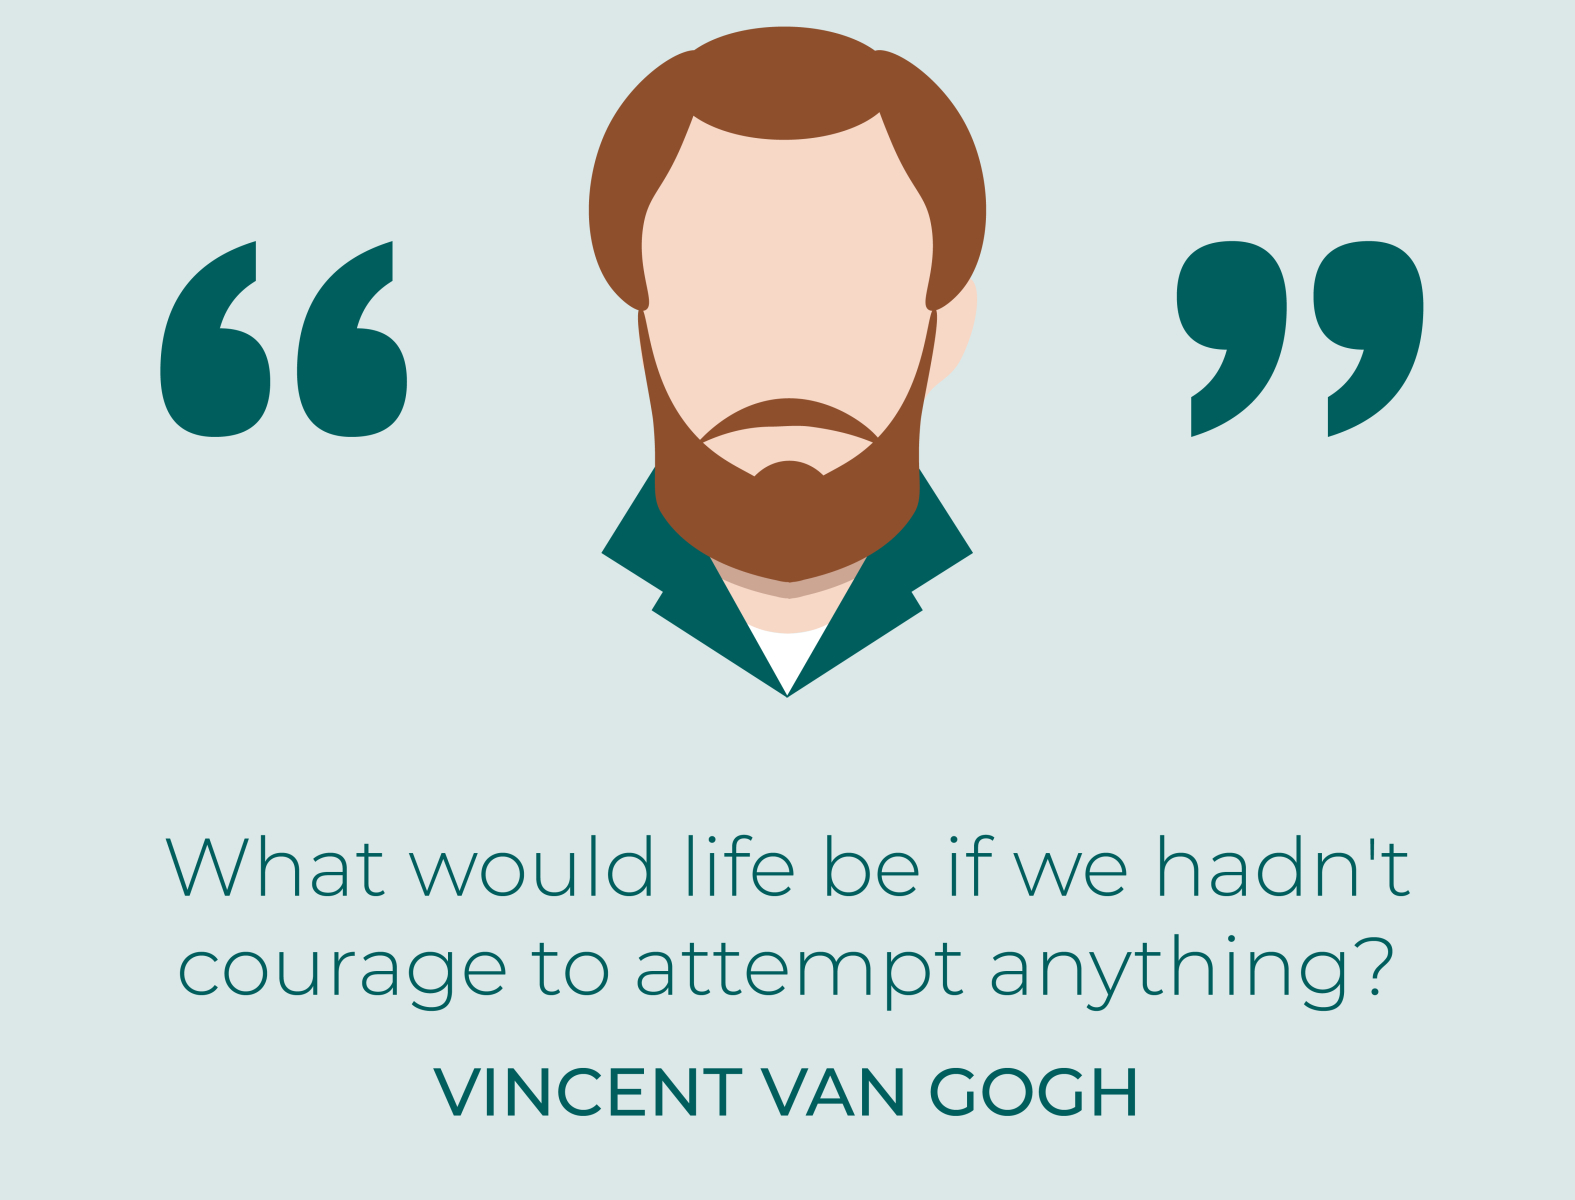 Vincent Van Gogh Quote Graphic By Sara Robillard On Dribbble,Room Wallpaper 3d Wallpaper Design With Price